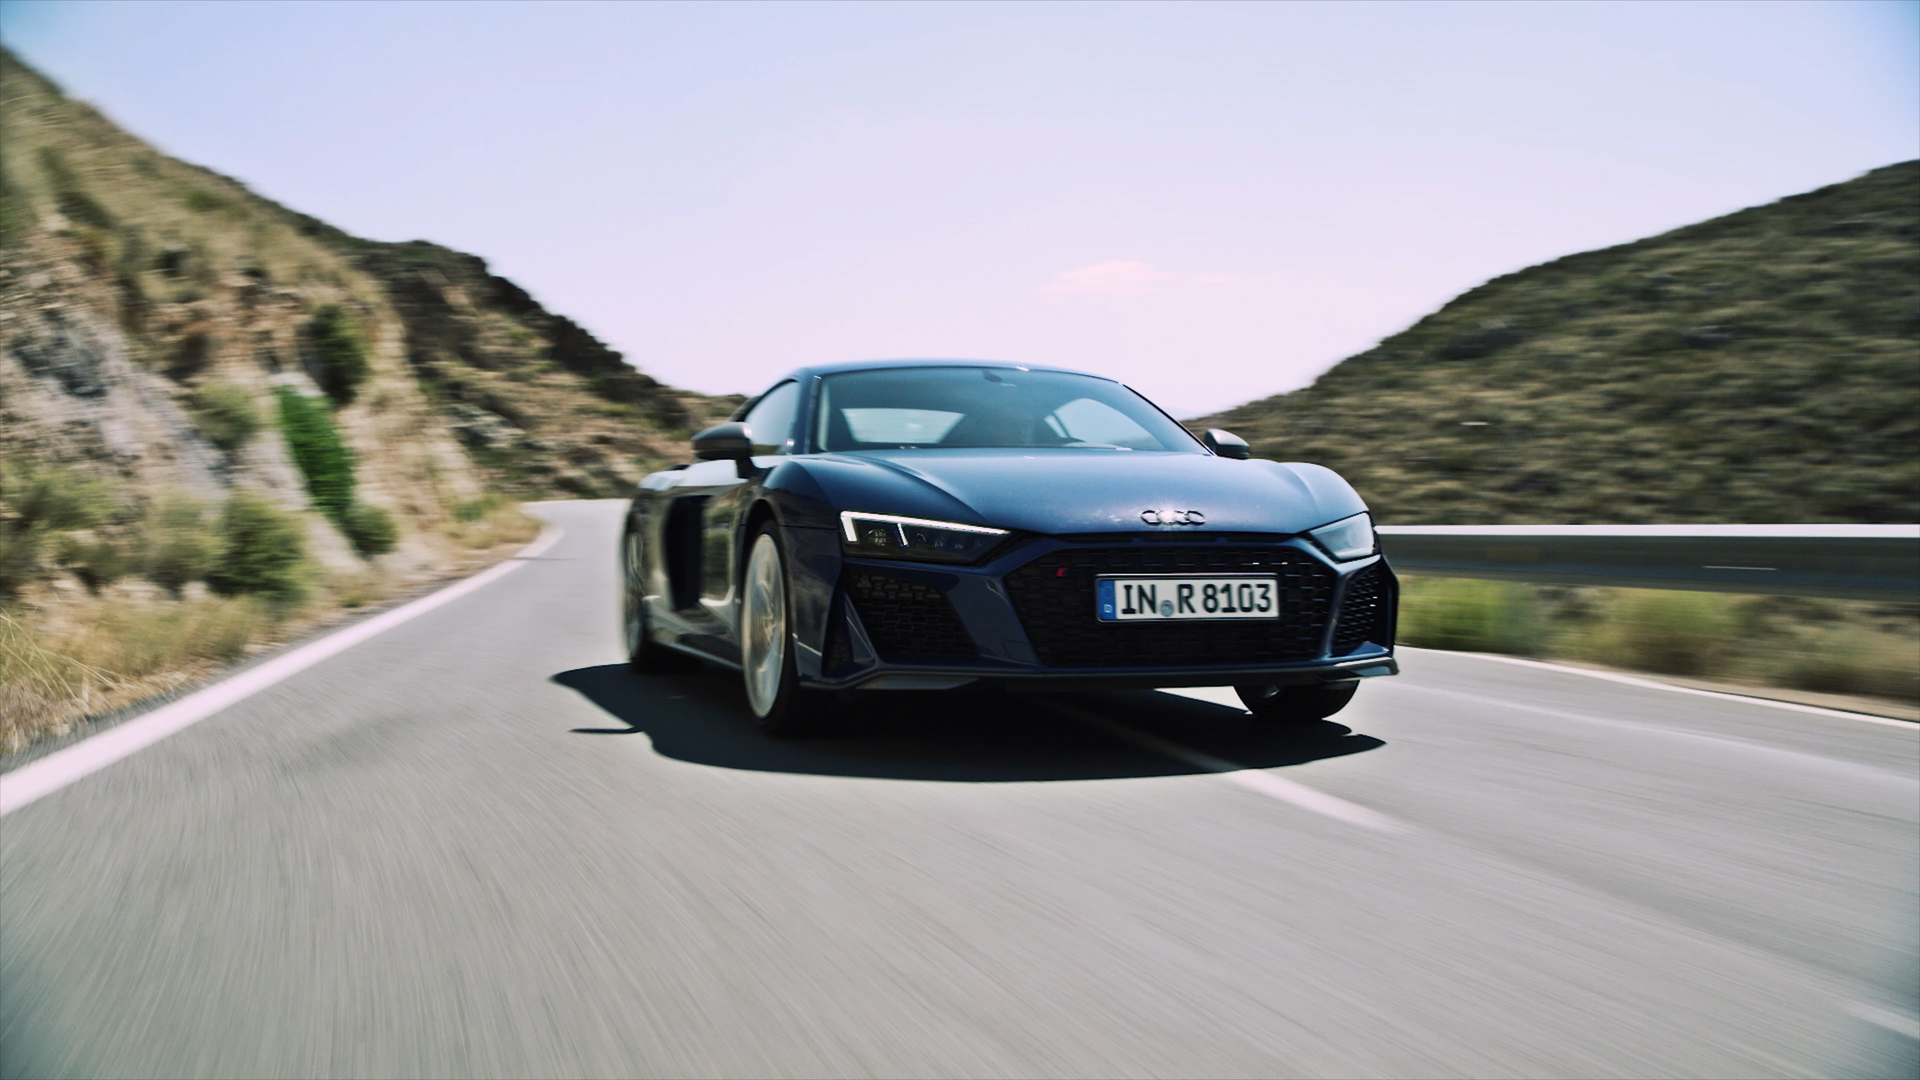 Audi R8 Coupé V10 performance quattro (Trailer)